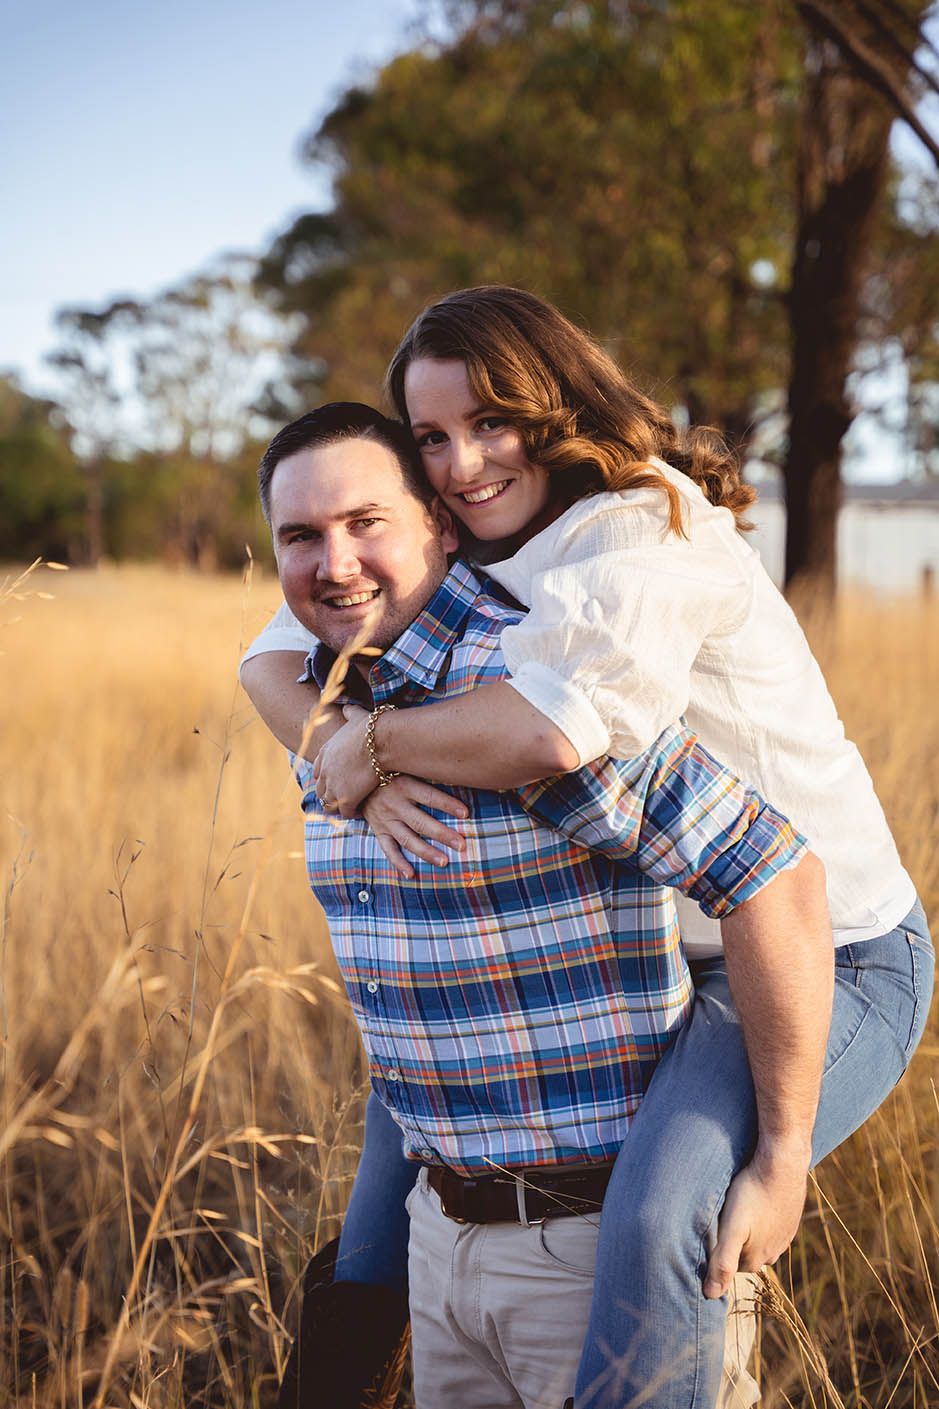 Engagement Photography - couple in field, fiance being carried